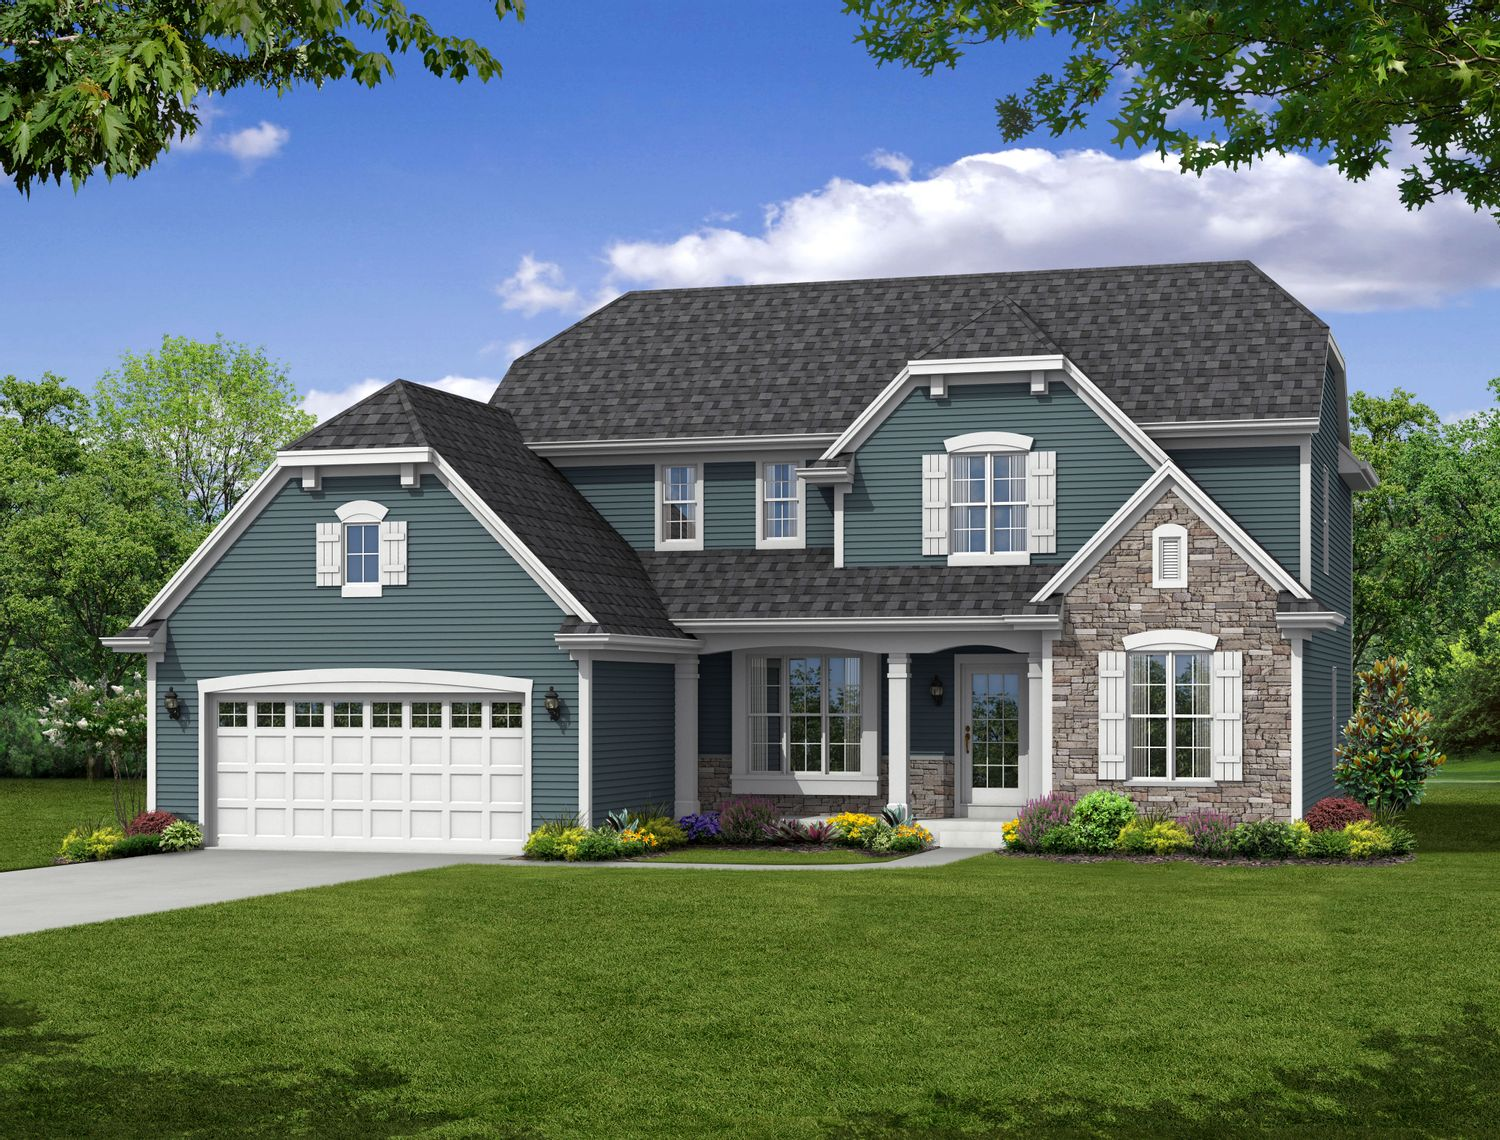 Single Family for Sale at Fairwinds - The Charlotte, Plan 2460 645 Westlawn Avenue Mukwonago, Wisconsin 53149 United States